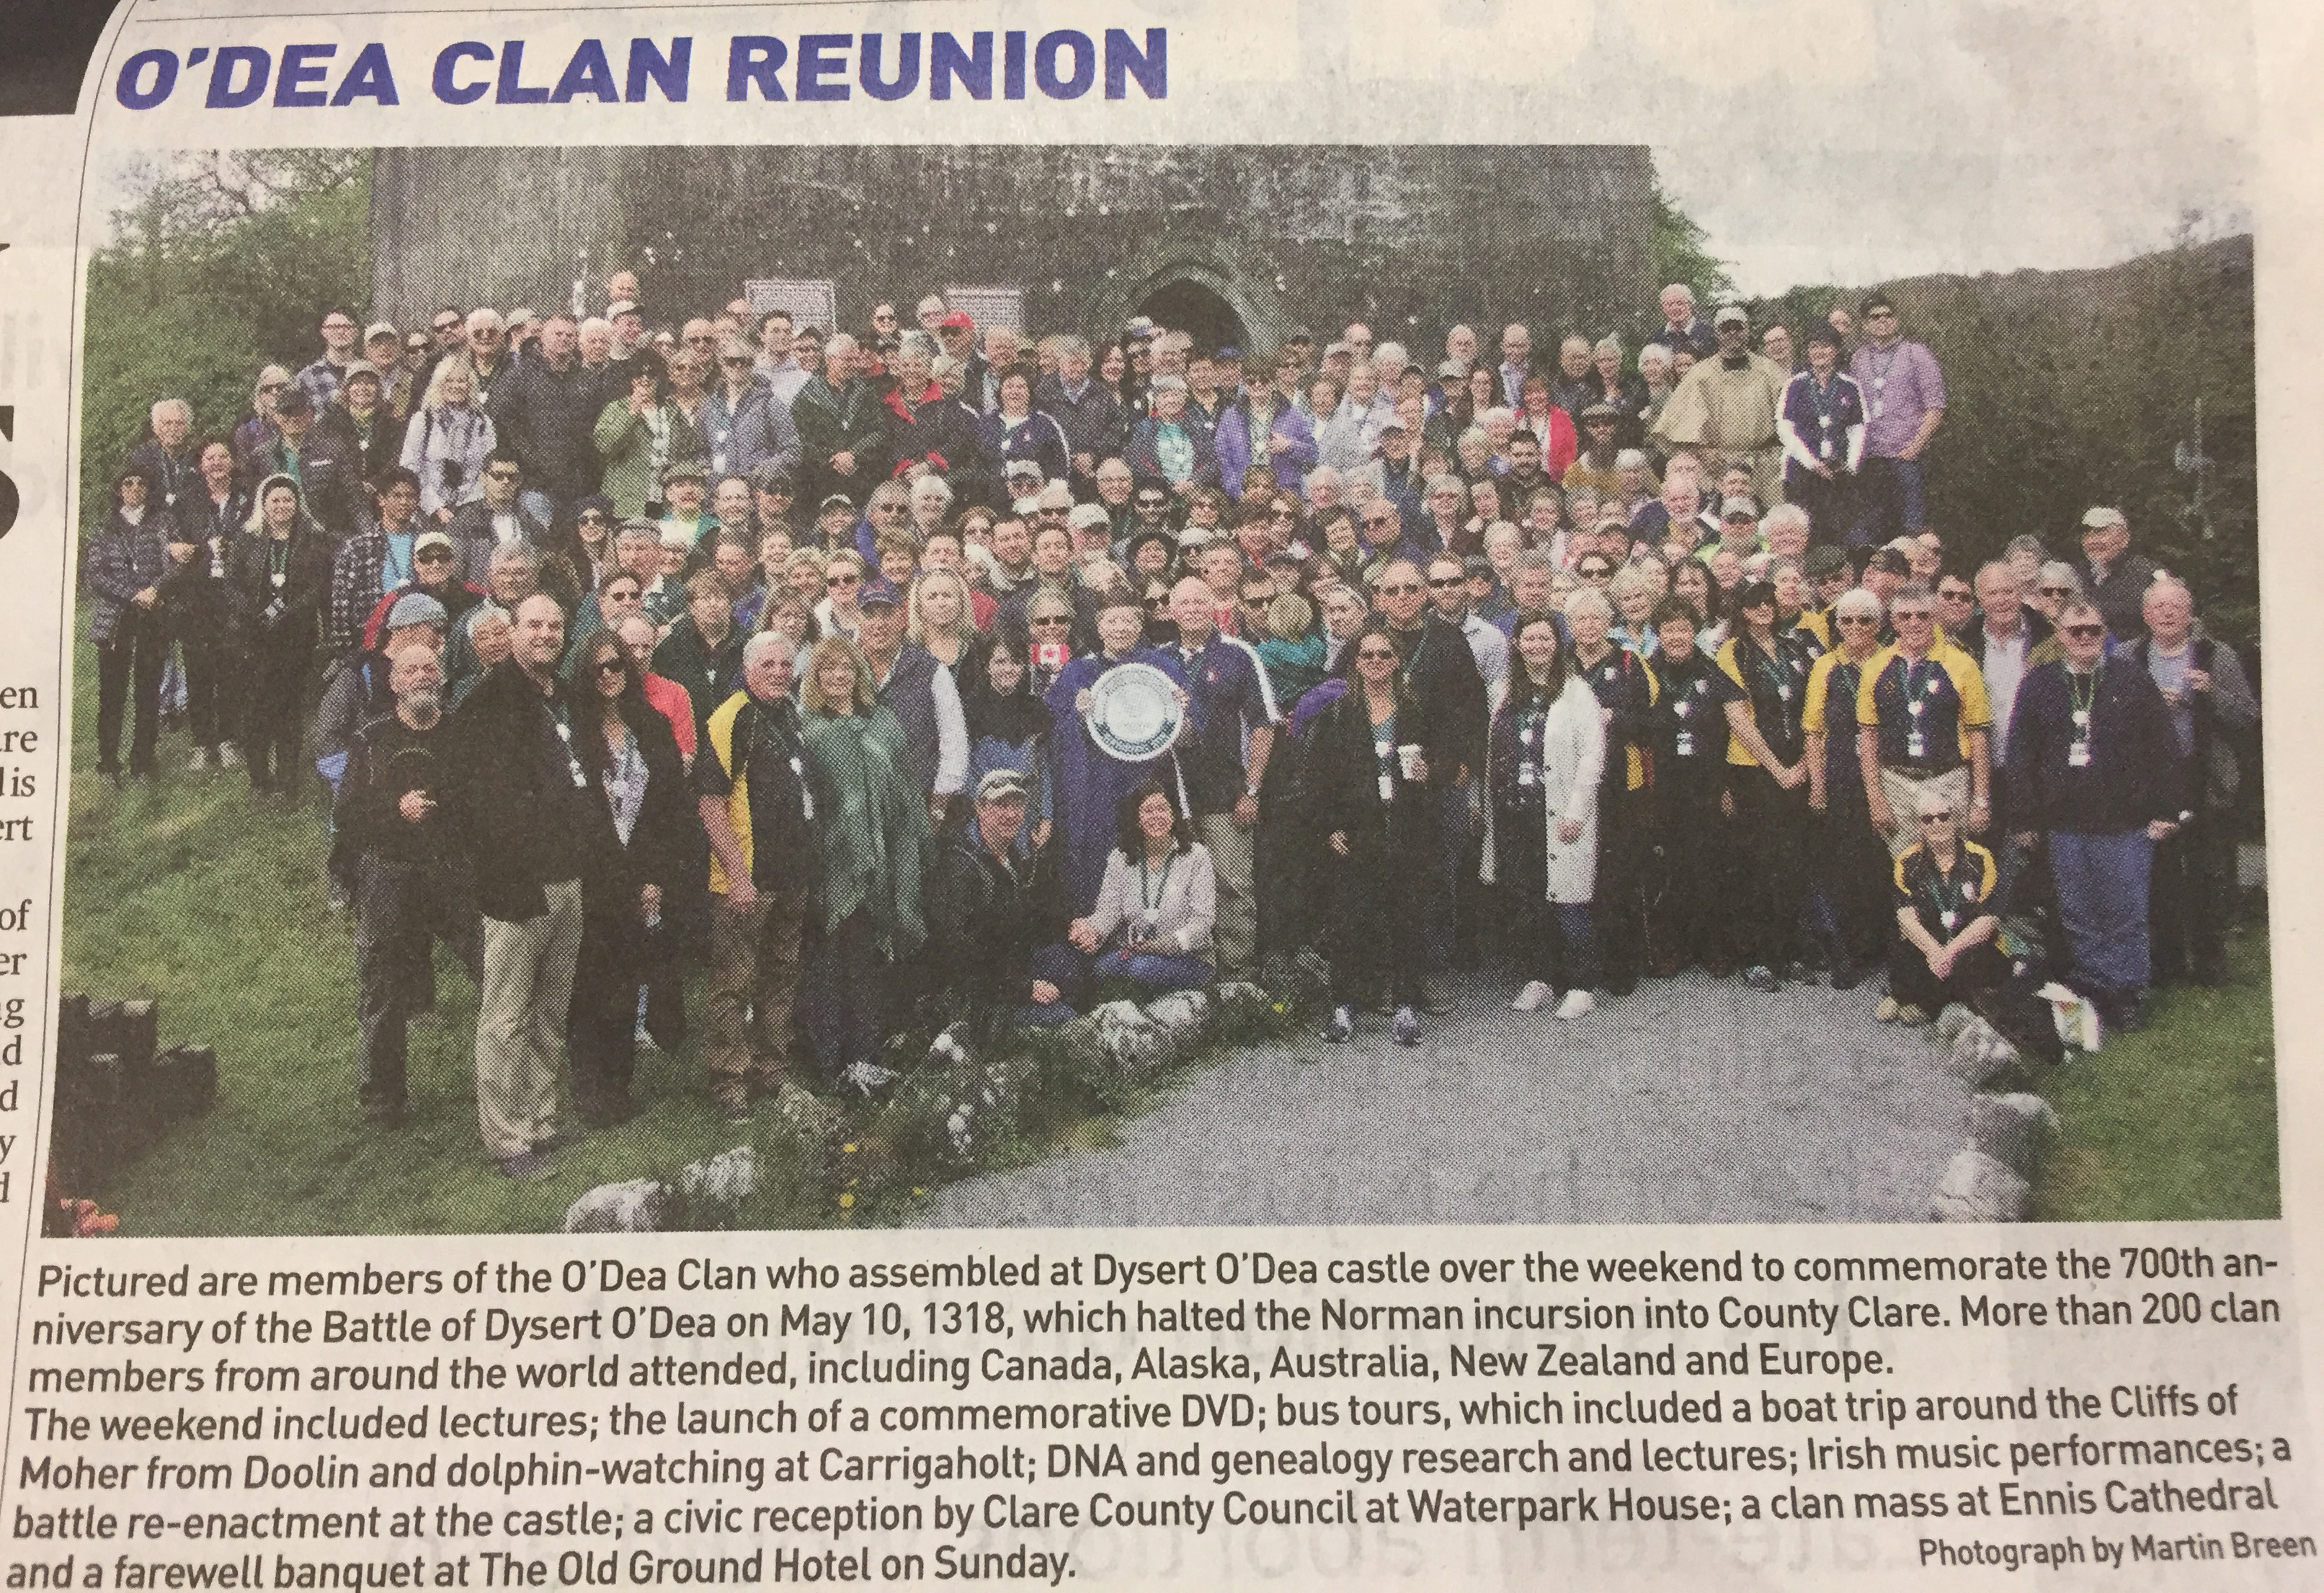 O'Dea Clan Reunion - News Report